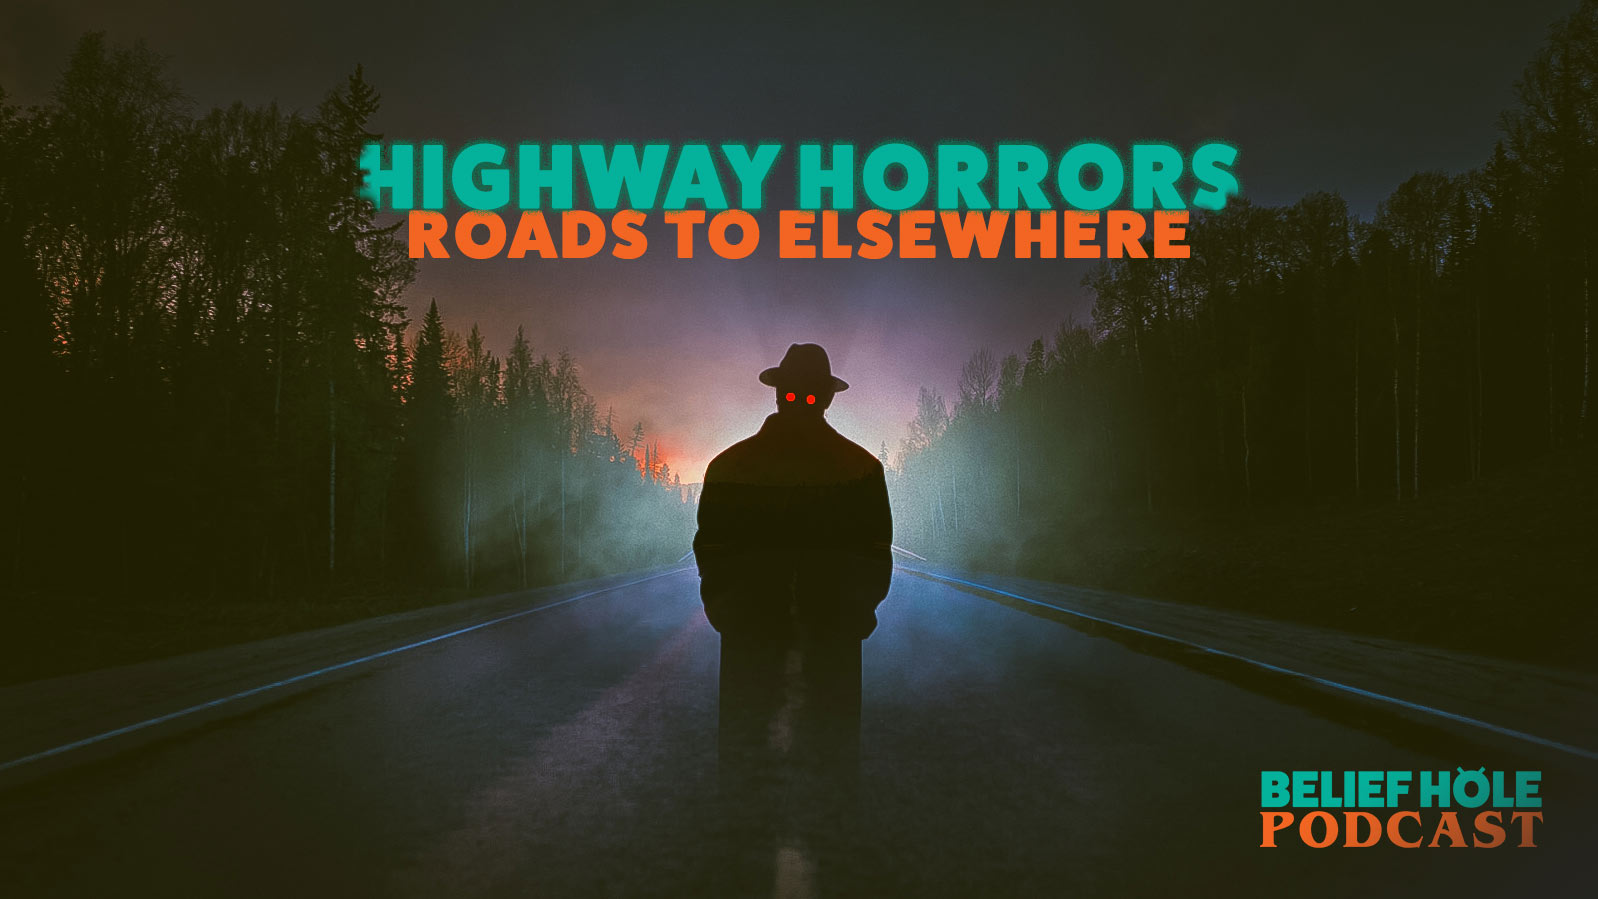 Highway-Ghost-Stories-Horrors-Roads-to-Elsewhere-interdimensional-travel-belief-hole-podcast-paranormal